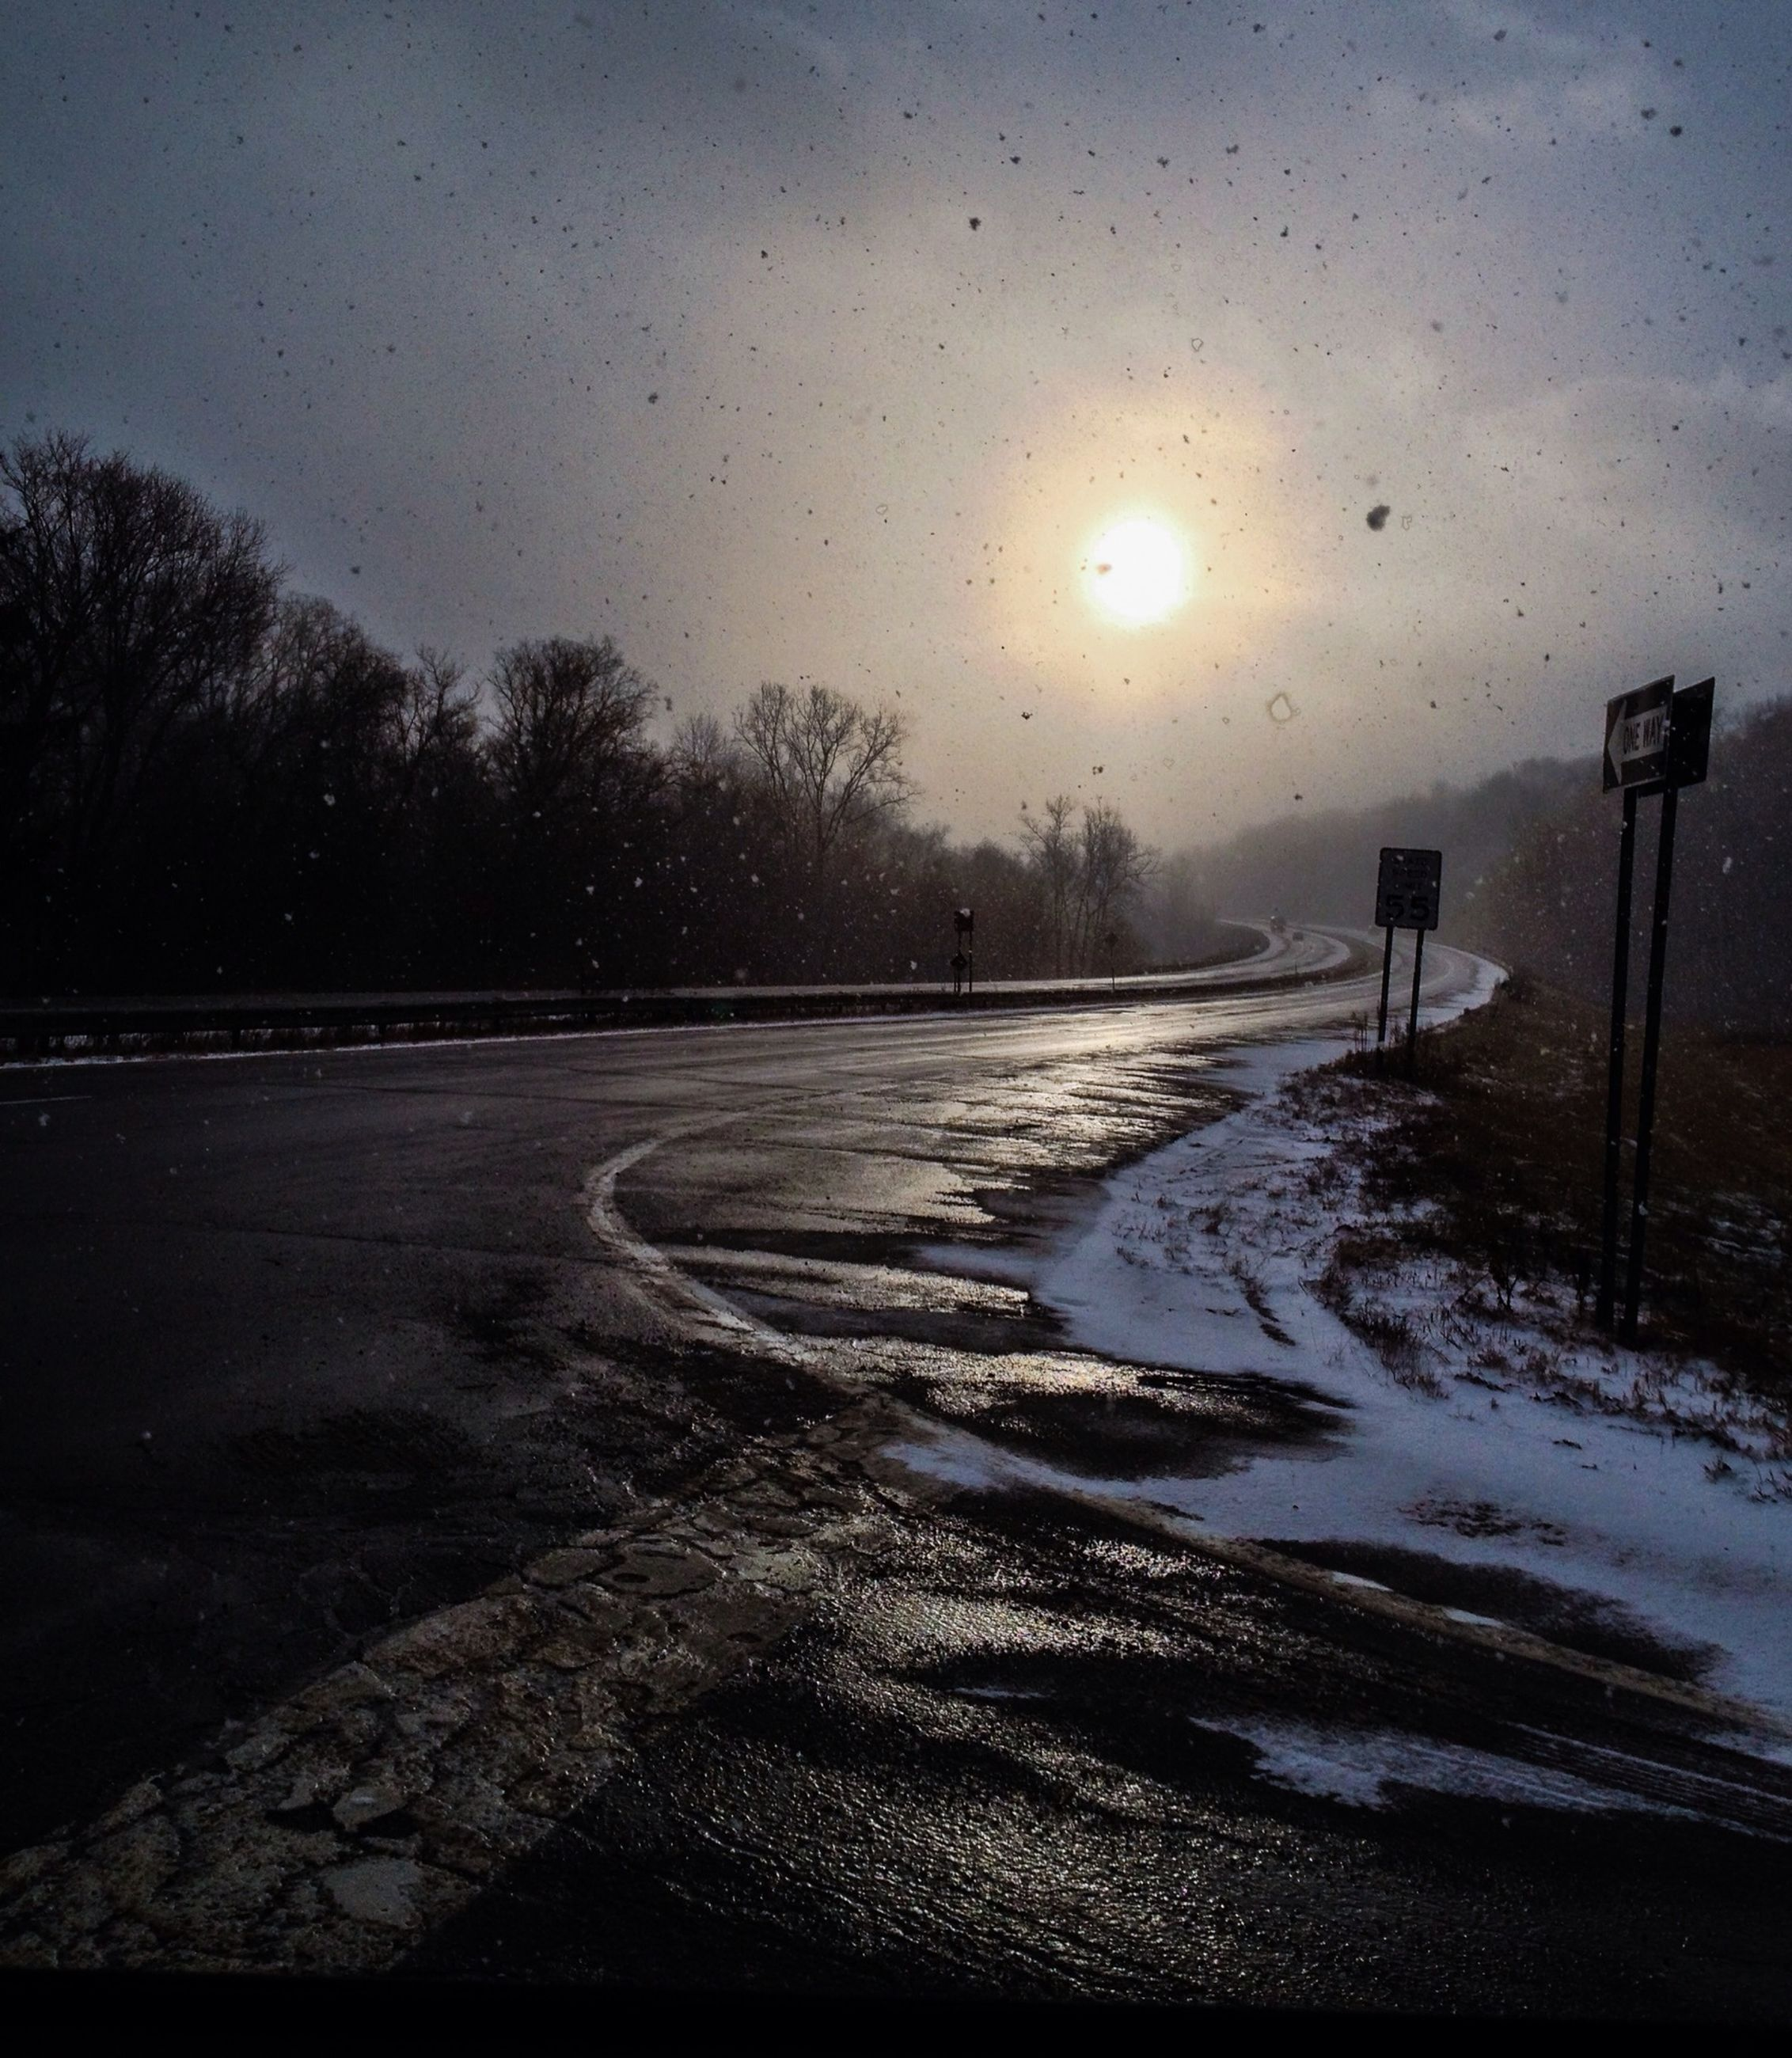 snow, cold temperature, winter, season, weather, street light, road, sky, sunset, tree, the way forward, wet, nature, tranquility, street, sun, transportation, beauty in nature, tranquil scene, frozen